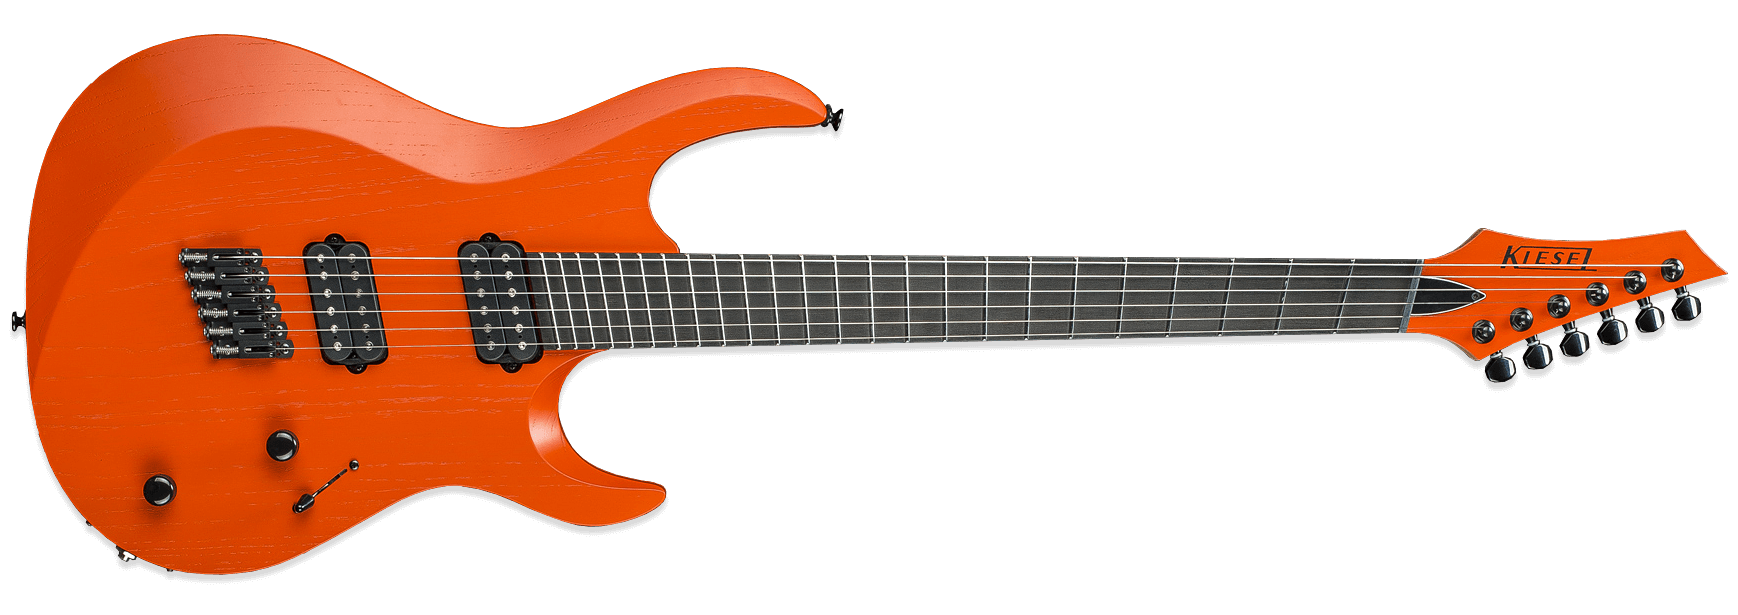 Kiesel Carvin Aries AM6 Multiscale Kiesel Racing Orange